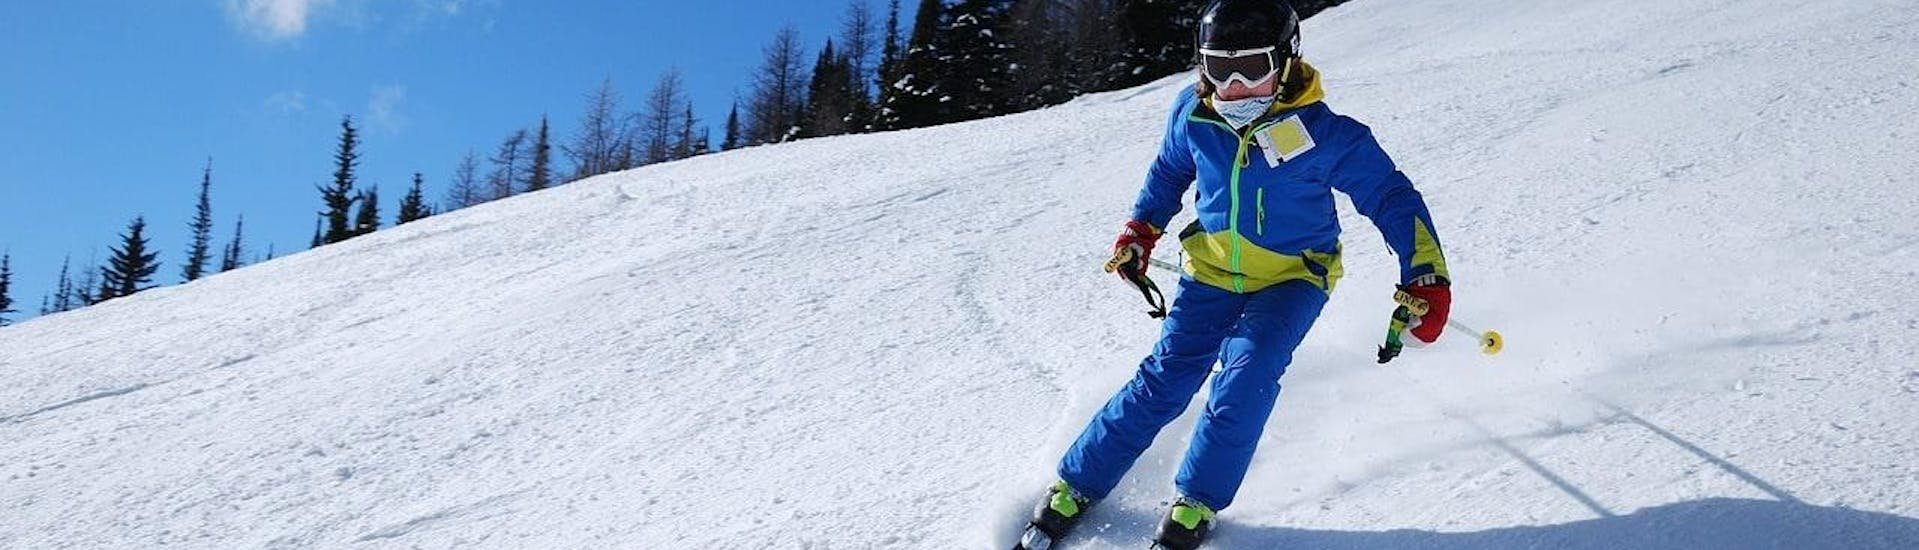 A skier is skiing down a slope with confidence during their Private Ski Lessons for Kids - Low Season with the ski school Moonshot La Bresse.